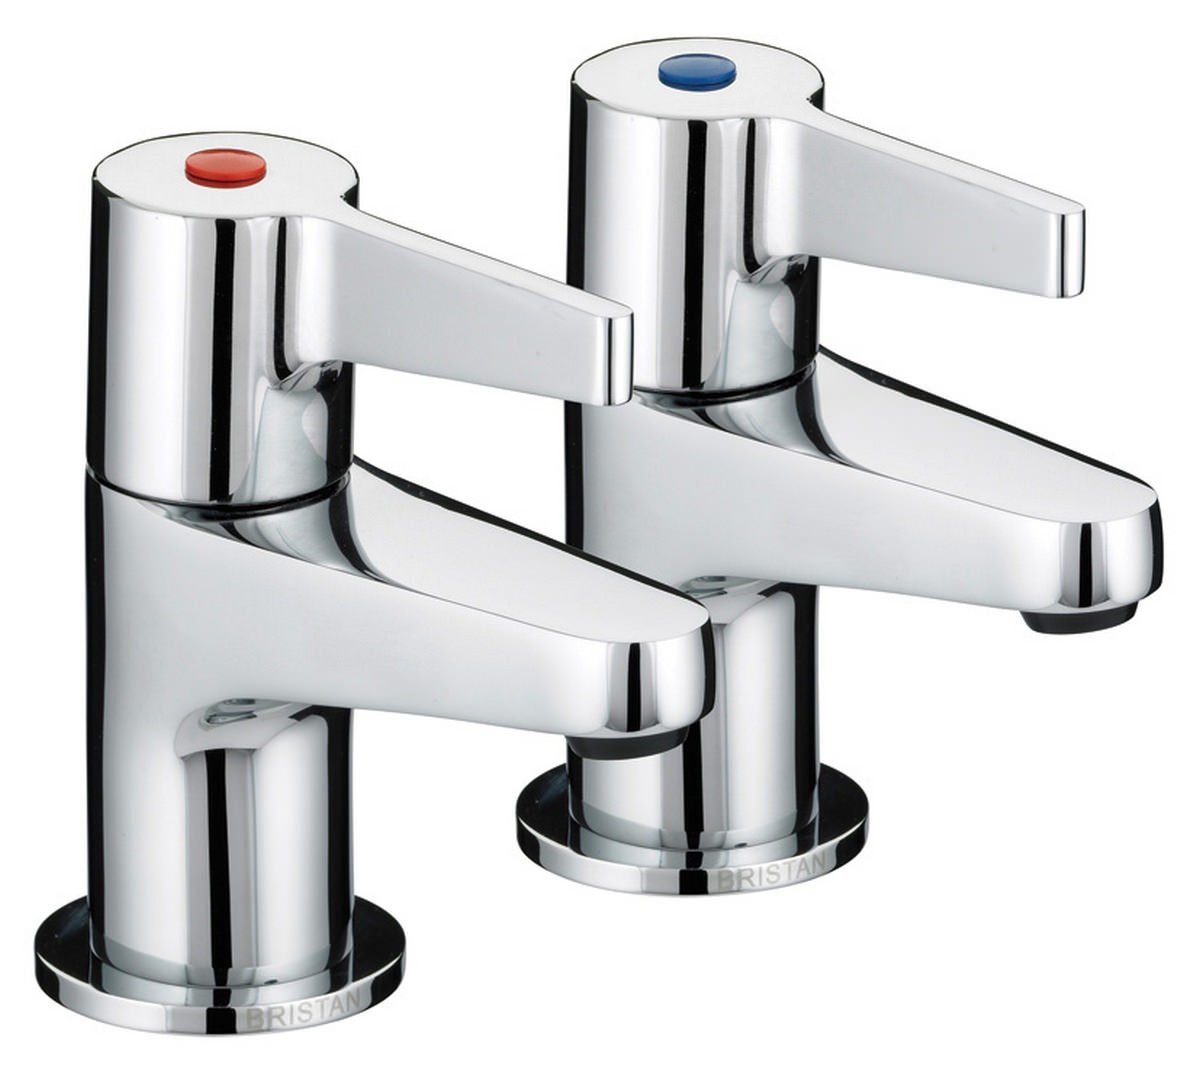 Bristan design utility lever 3 4 bath taps dul 3 4 c for Bathroom taps